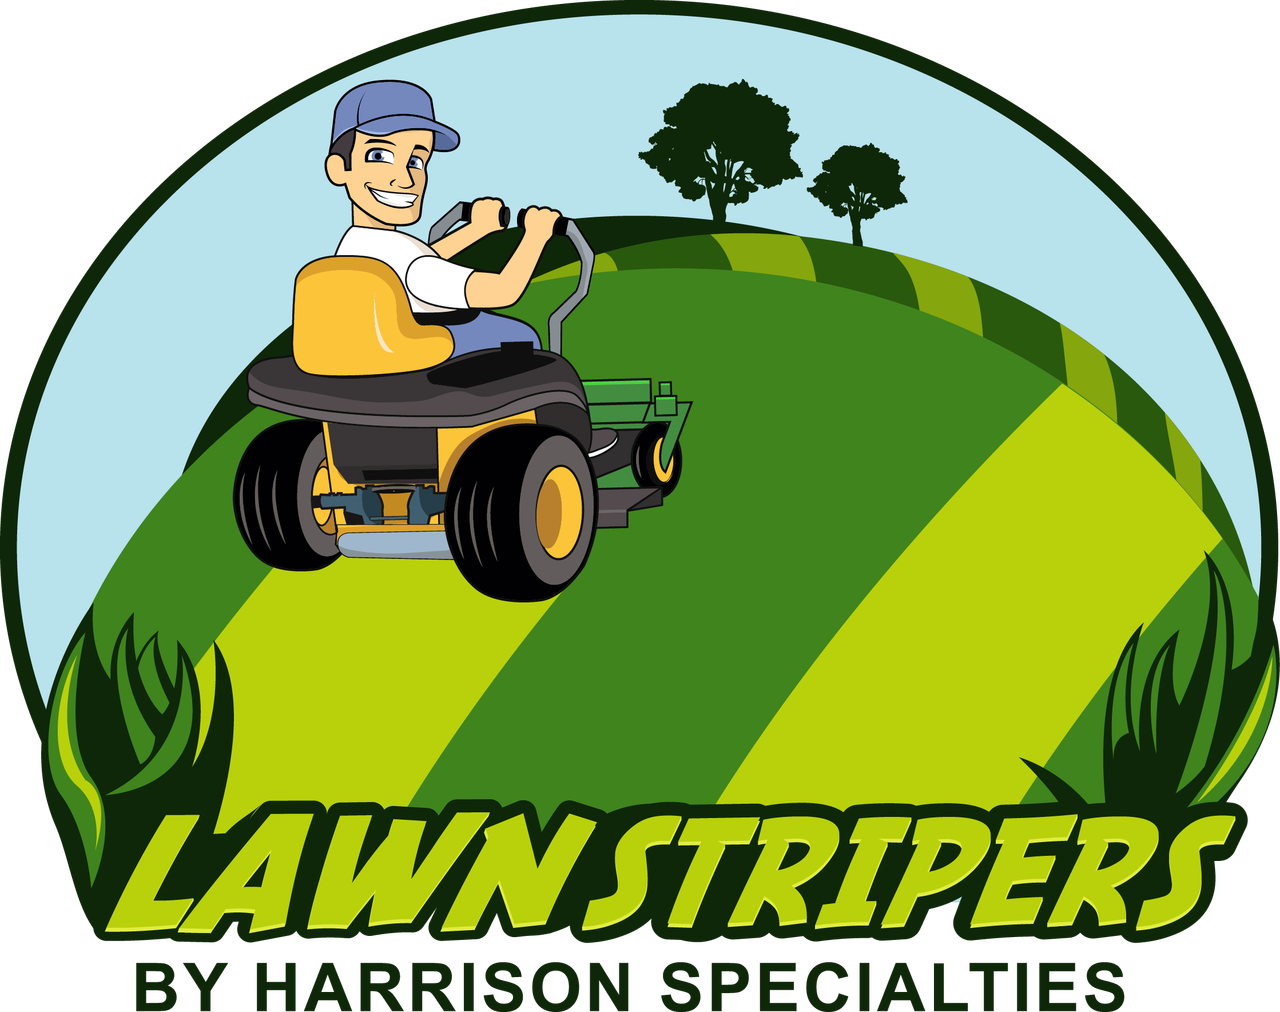 "Lawn Striper Kit for Toro 500 Series Commercial Z-Master with 72"", 60"", or 48"" Decks 04-08"